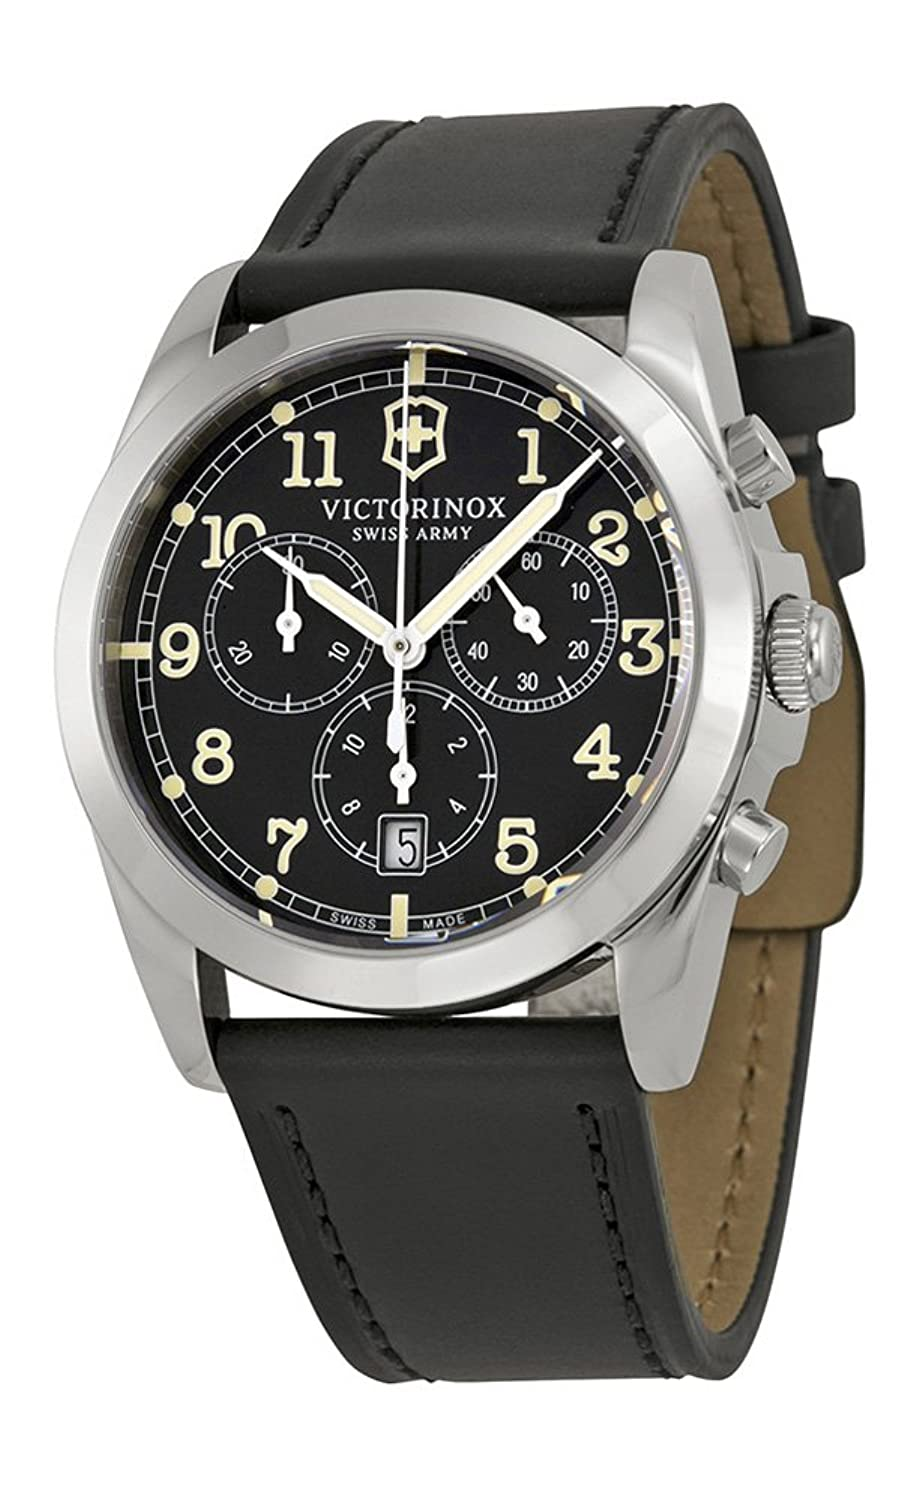 Swiss Army Infantry Vintage Chronograph Steel Mens Watch Black Dial Date 241588